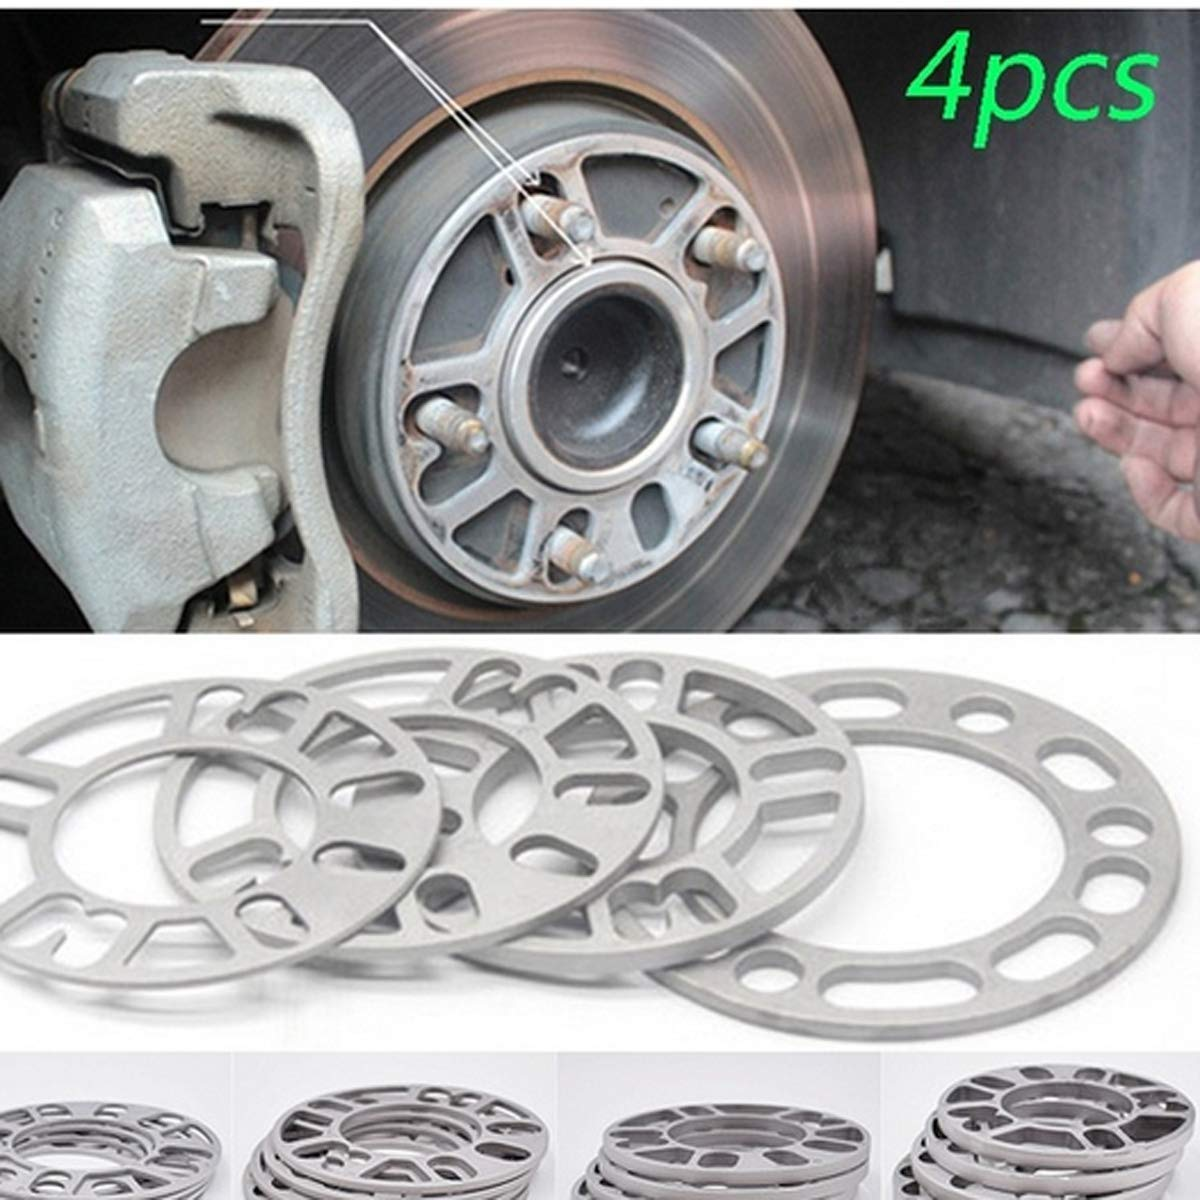 Sushiyi Alloy Aluminum Unverisal Adapters for 4 Lug or 5 Lug Wheels Provide Desired Offset Pk of 4 5mm Thickness Wheel Spacers for 98-120 Rims Wheel